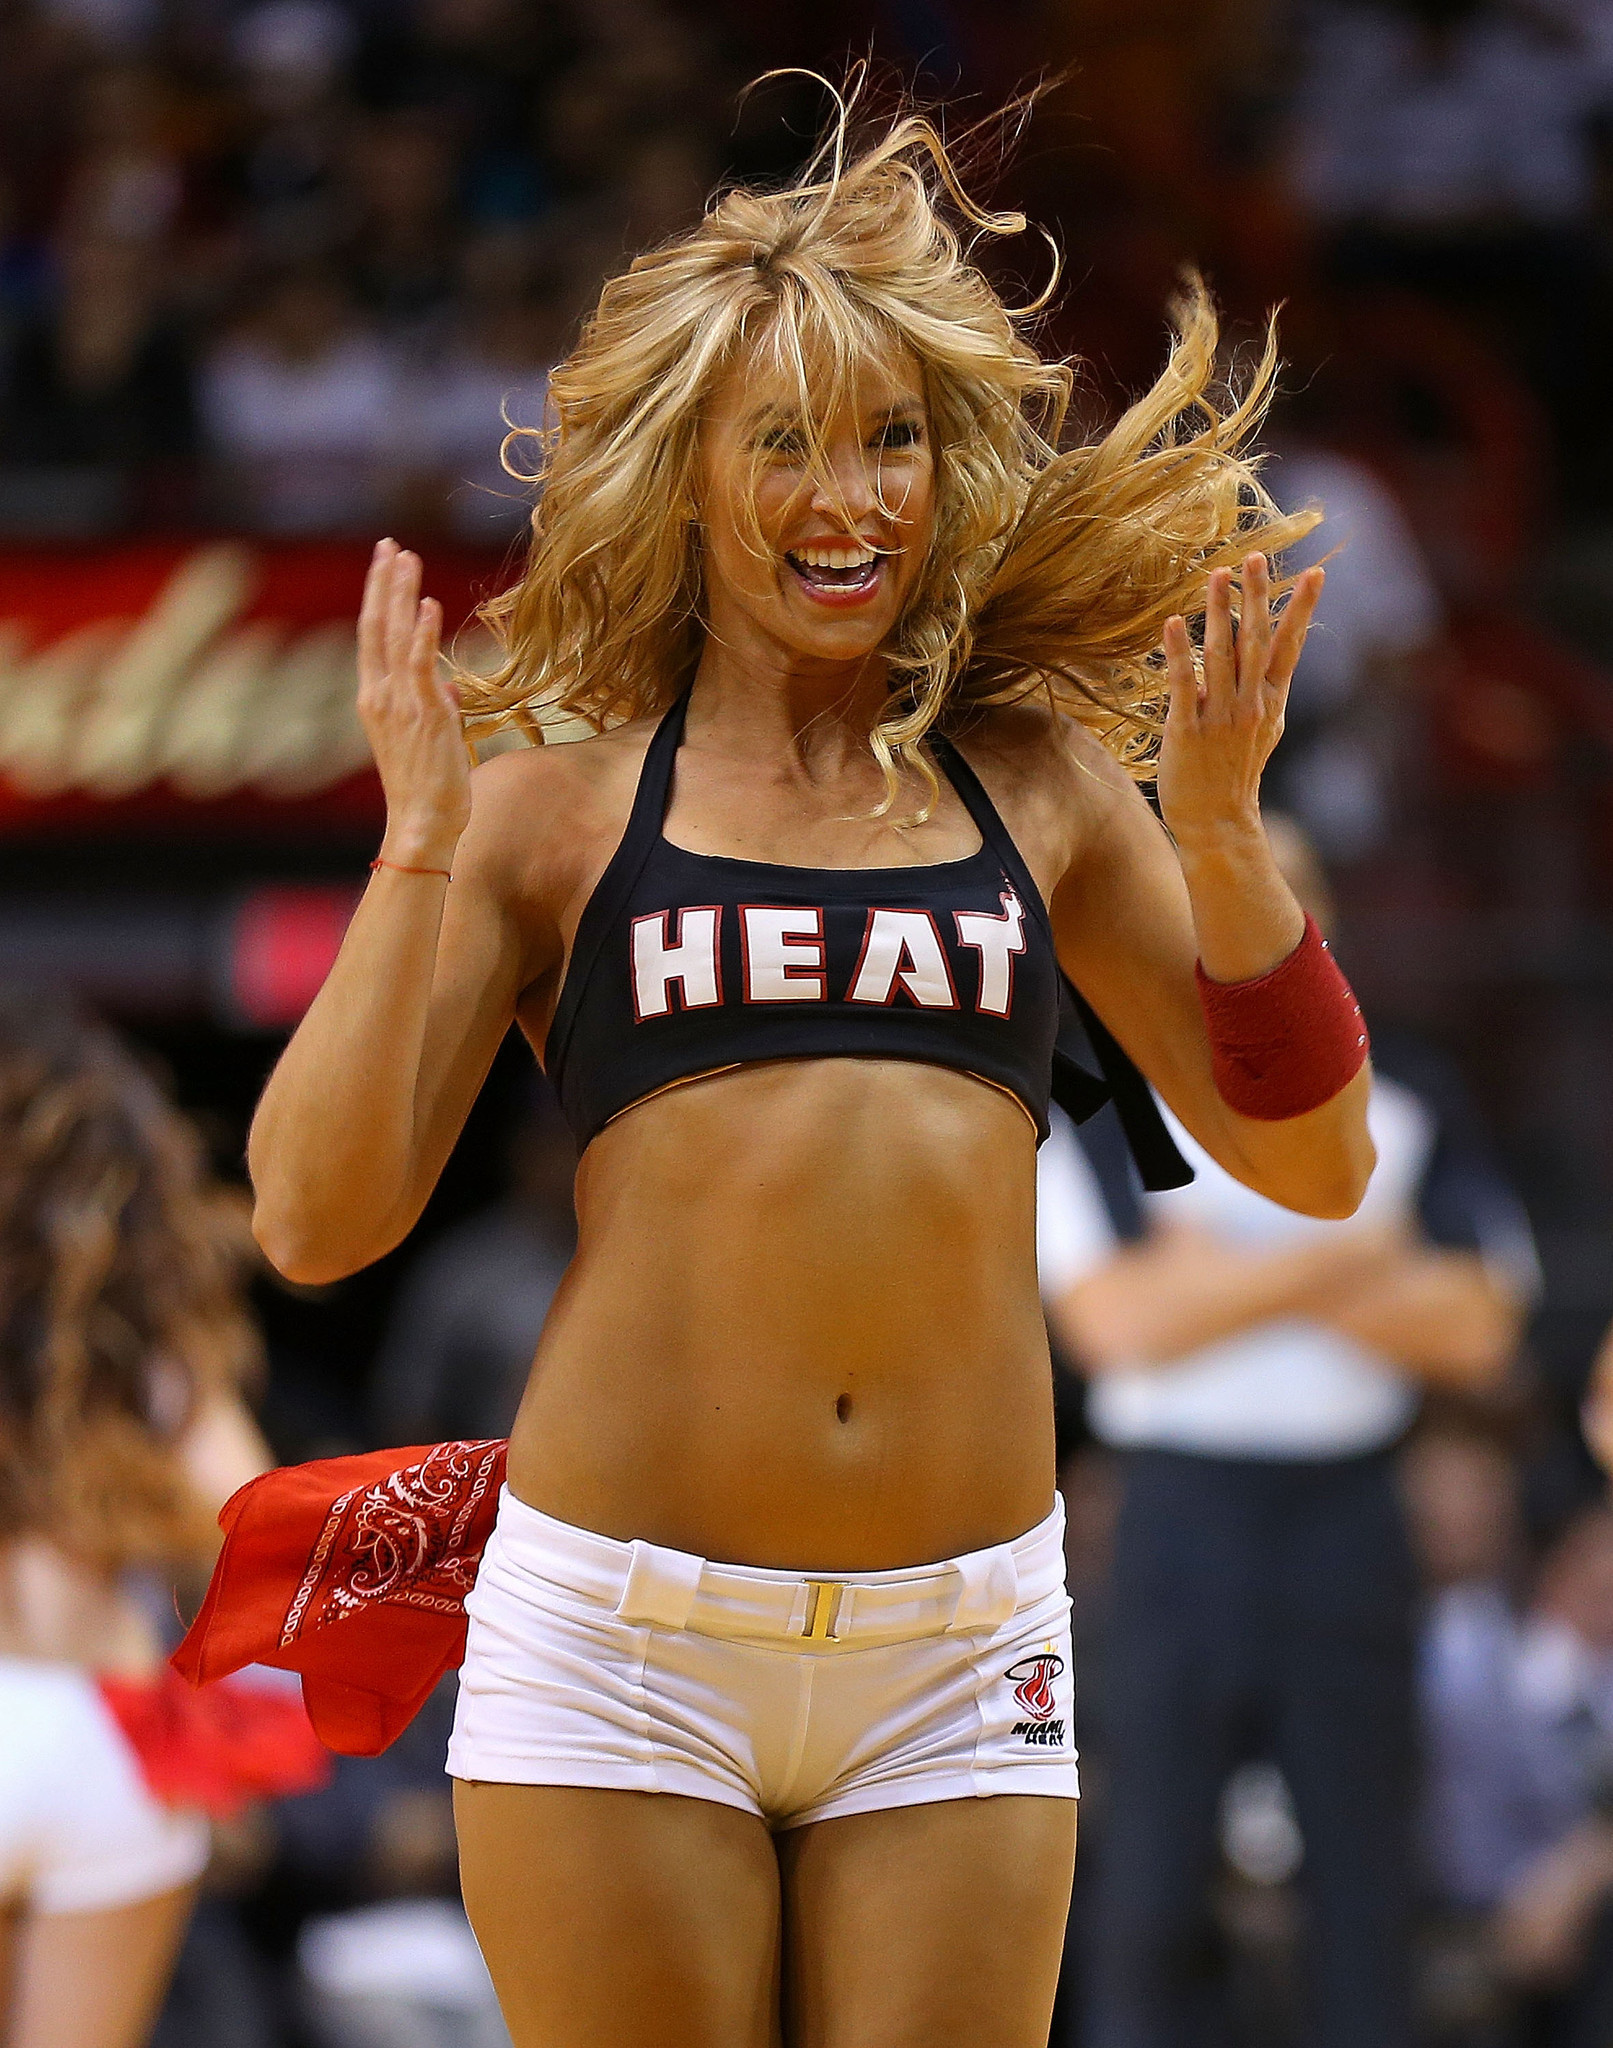 Photos: Miami Heat Dancers in action - A member of the Miami Heat dance team performs during a game against the Minnesota Timberwolves.